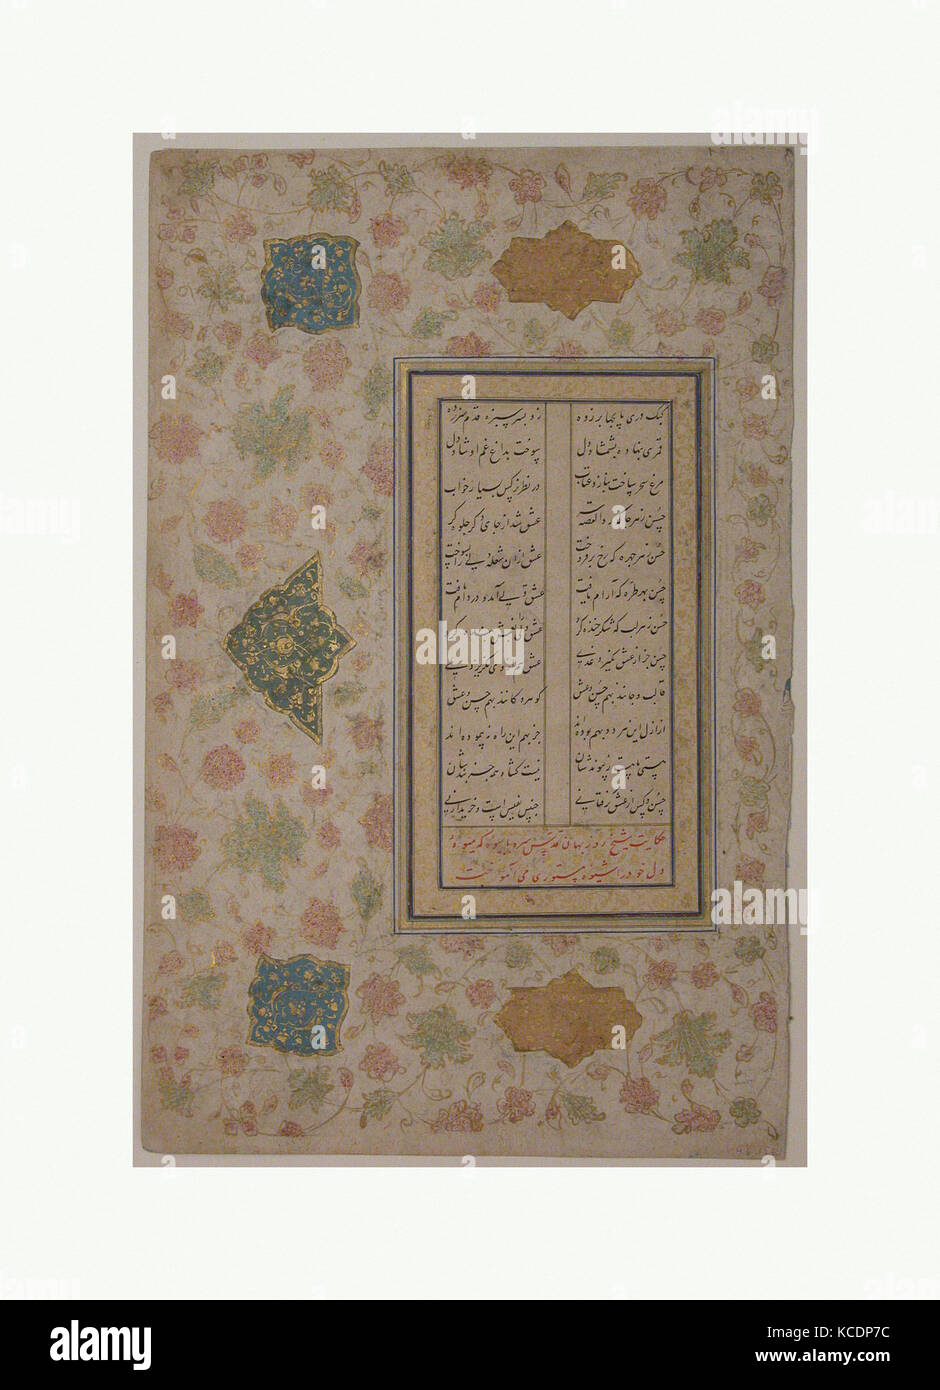 Page of Calligraphy, 16th century, Attributed to Iran, Ink, opaque watercolor, and gold on paper, 10 7/8 x 7in. - Stock Image